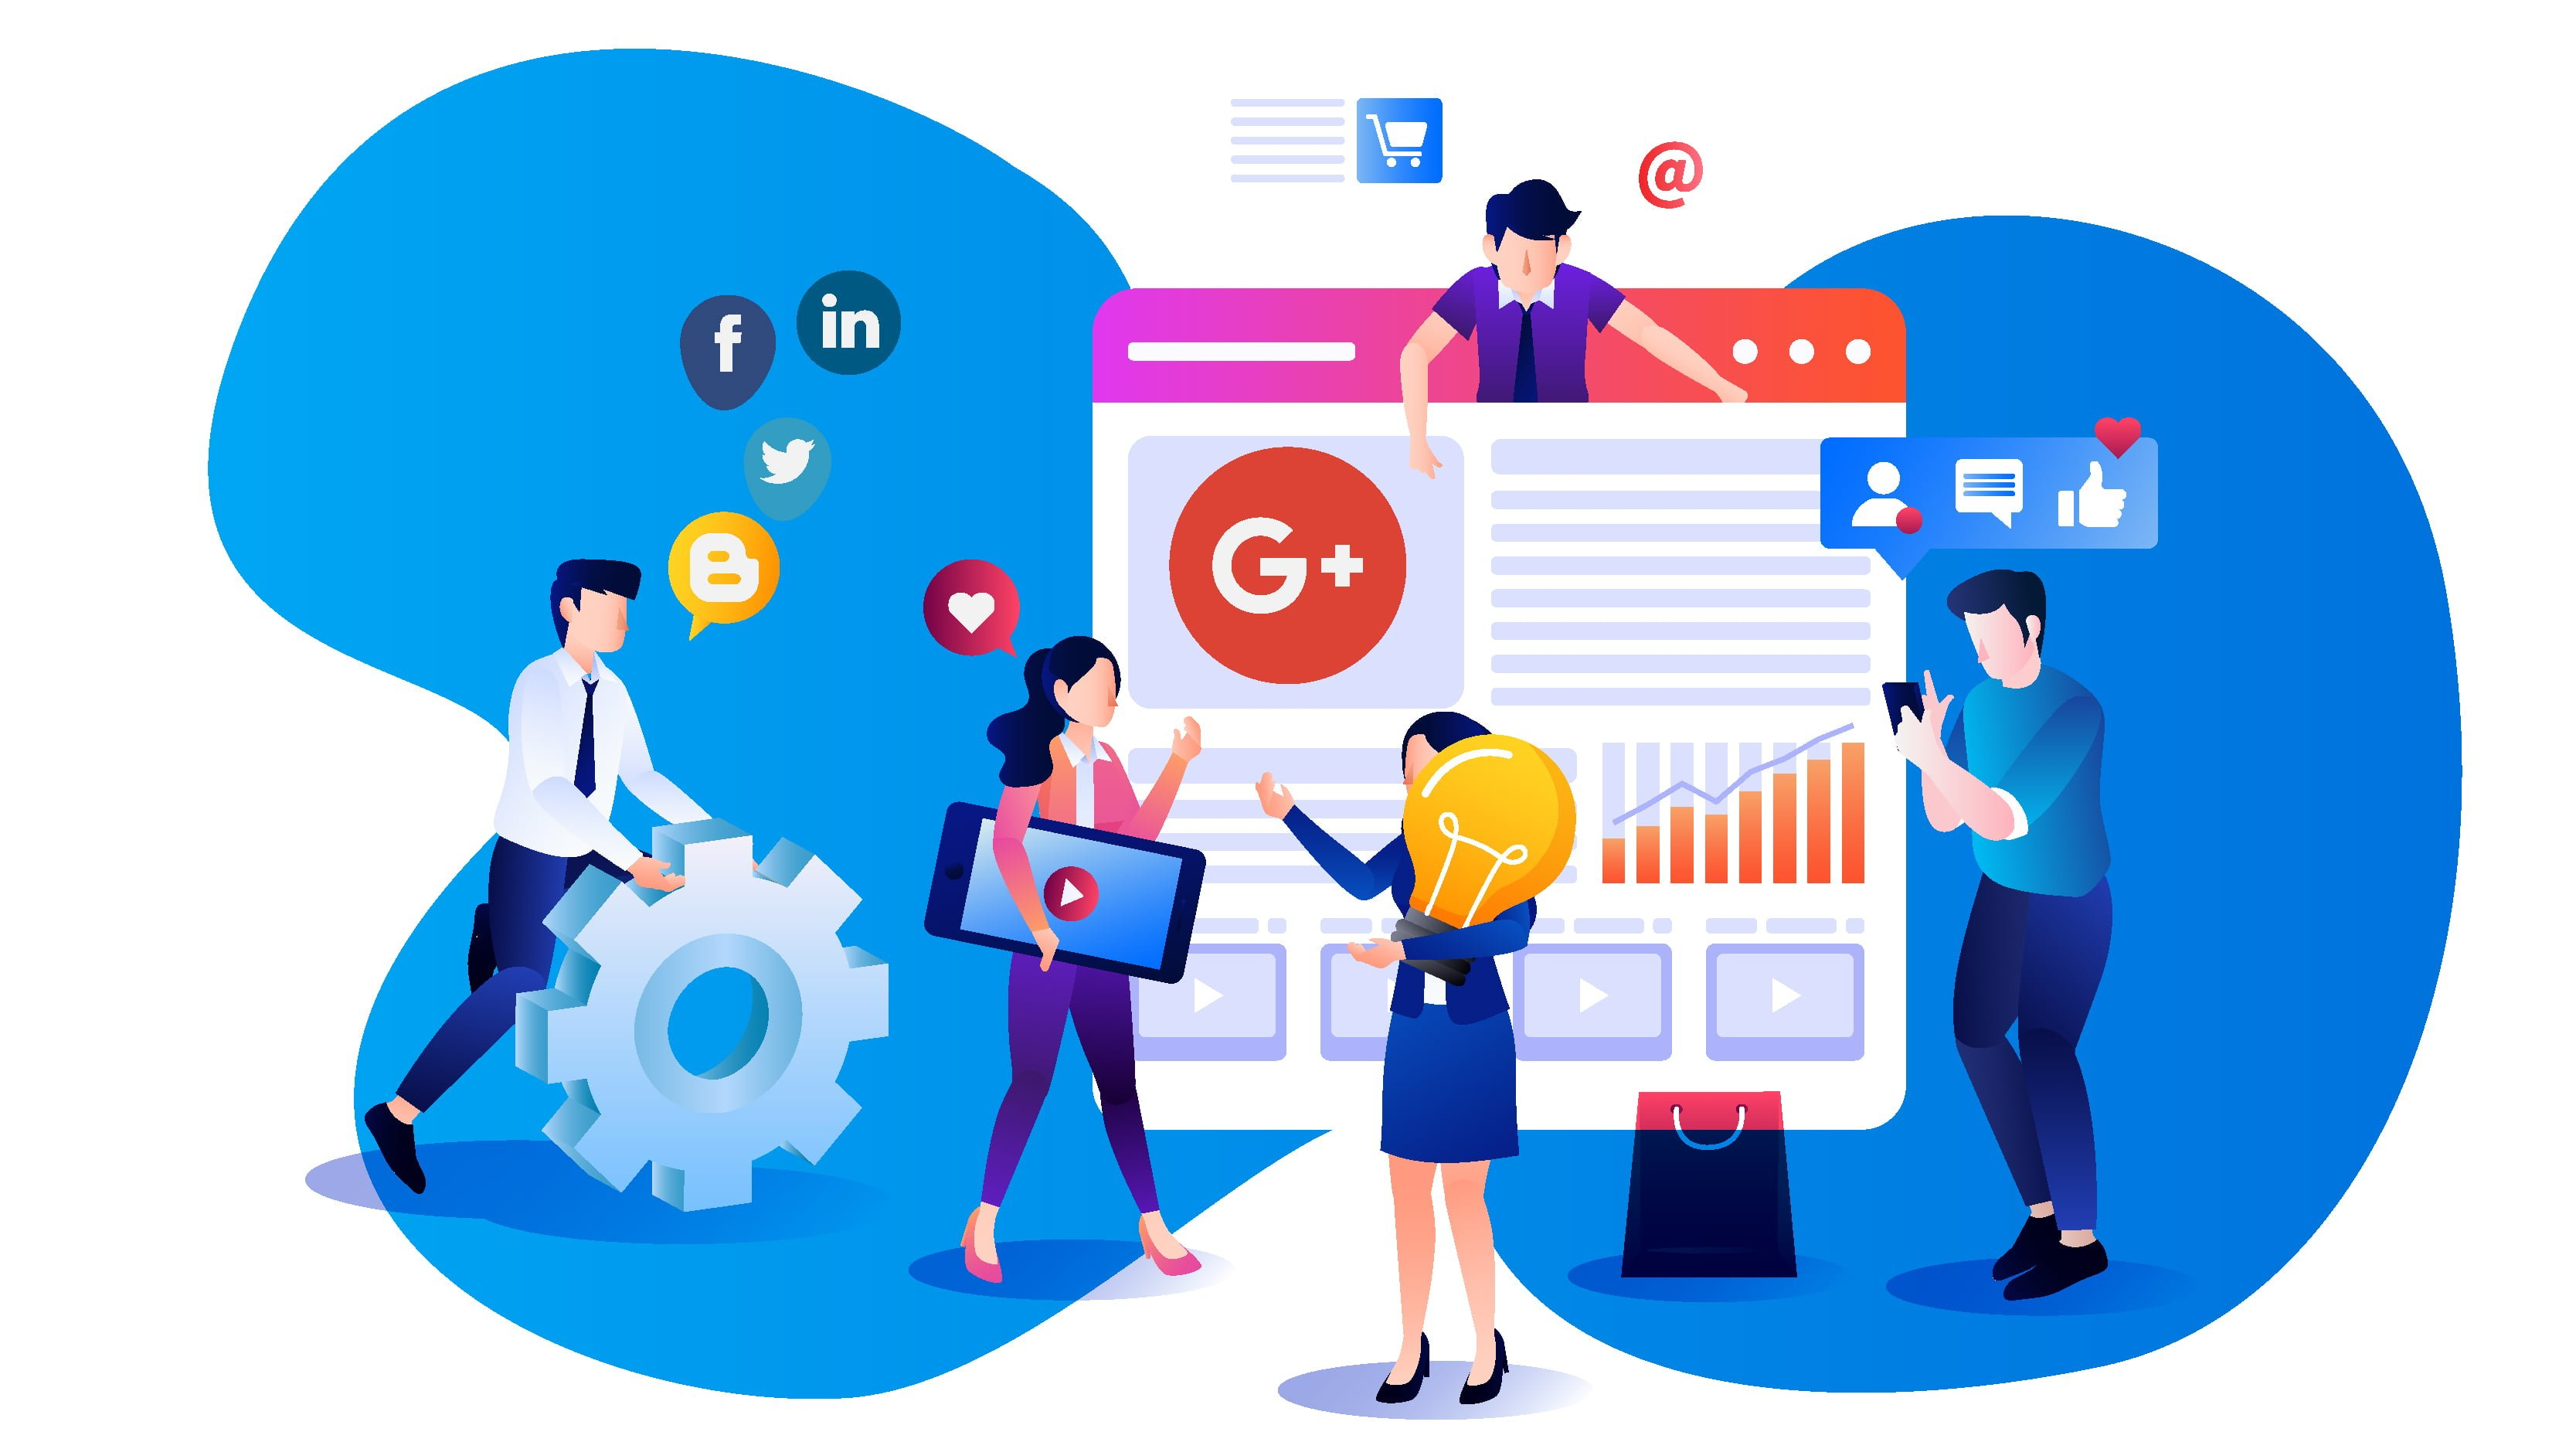 Digital marketing training in Guntur and digital marketing services in Guntur